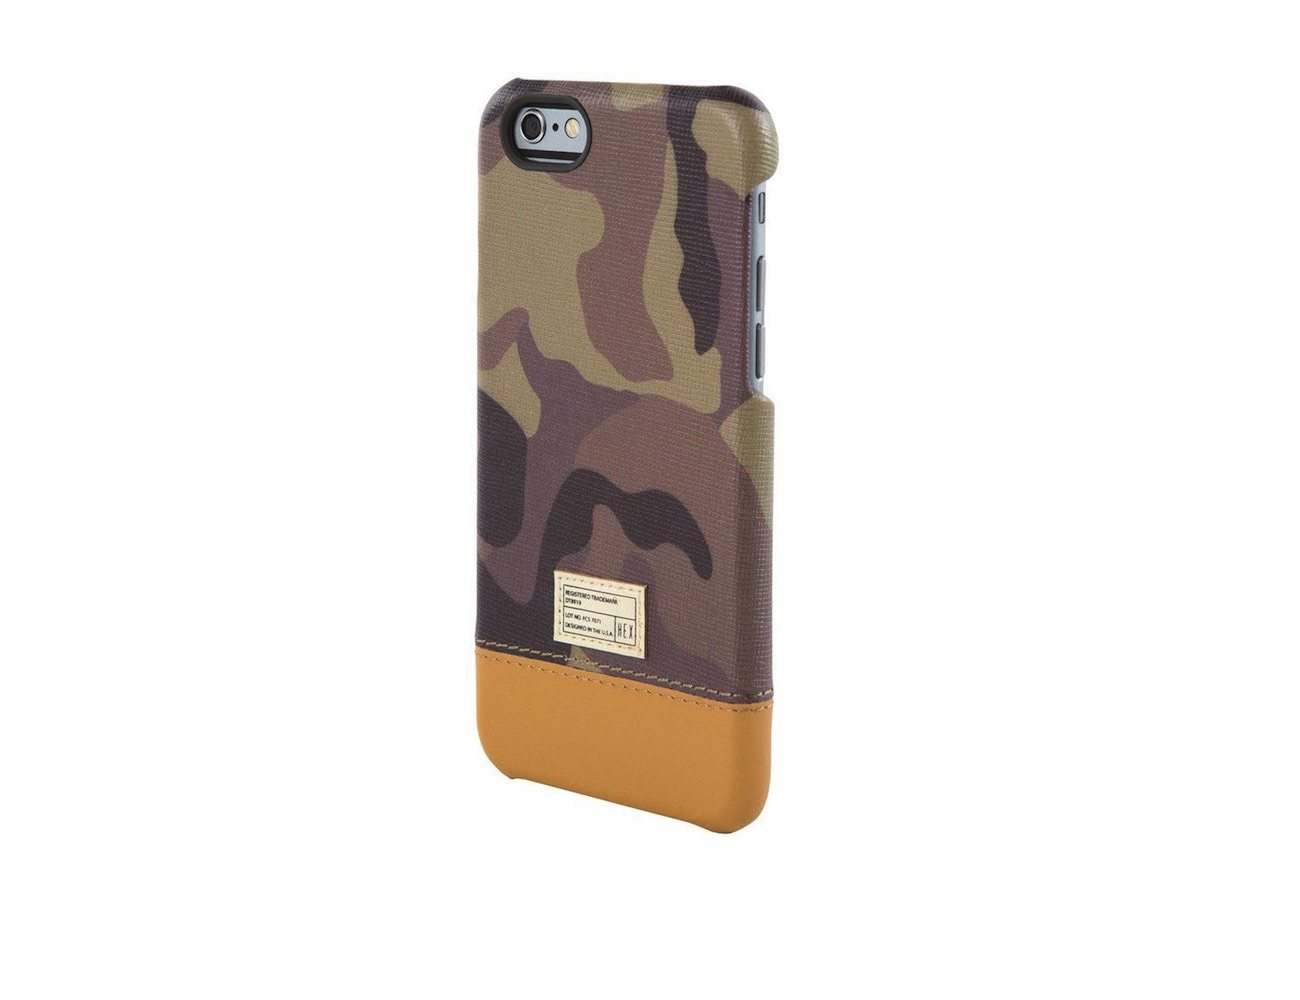 focus-iphone-6-camo-leather-case-by-hex-03